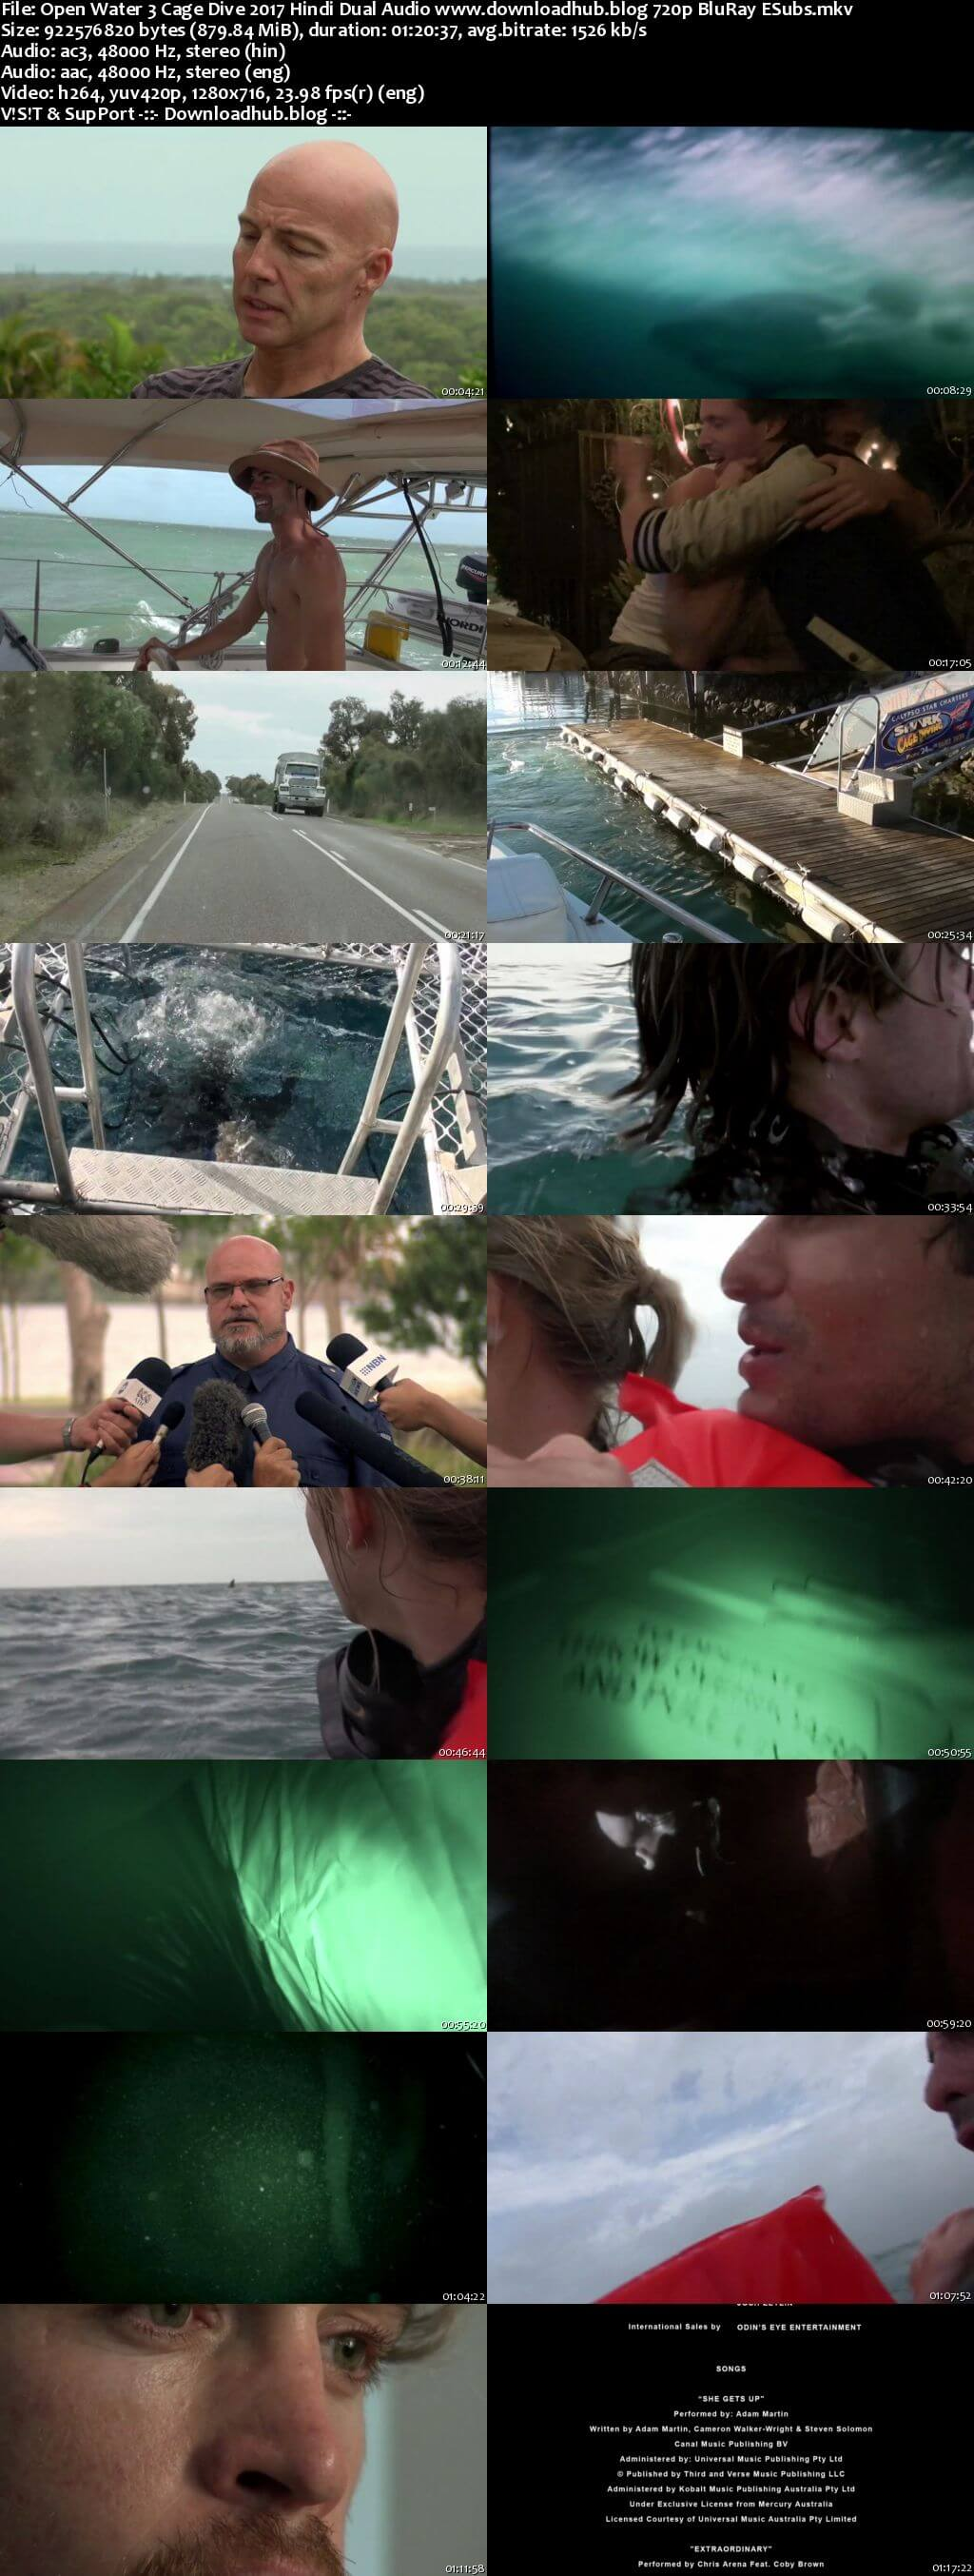 Open Water 3 Cage Dive 2017 Hindi Dual Audio 720p BluRay ESubs